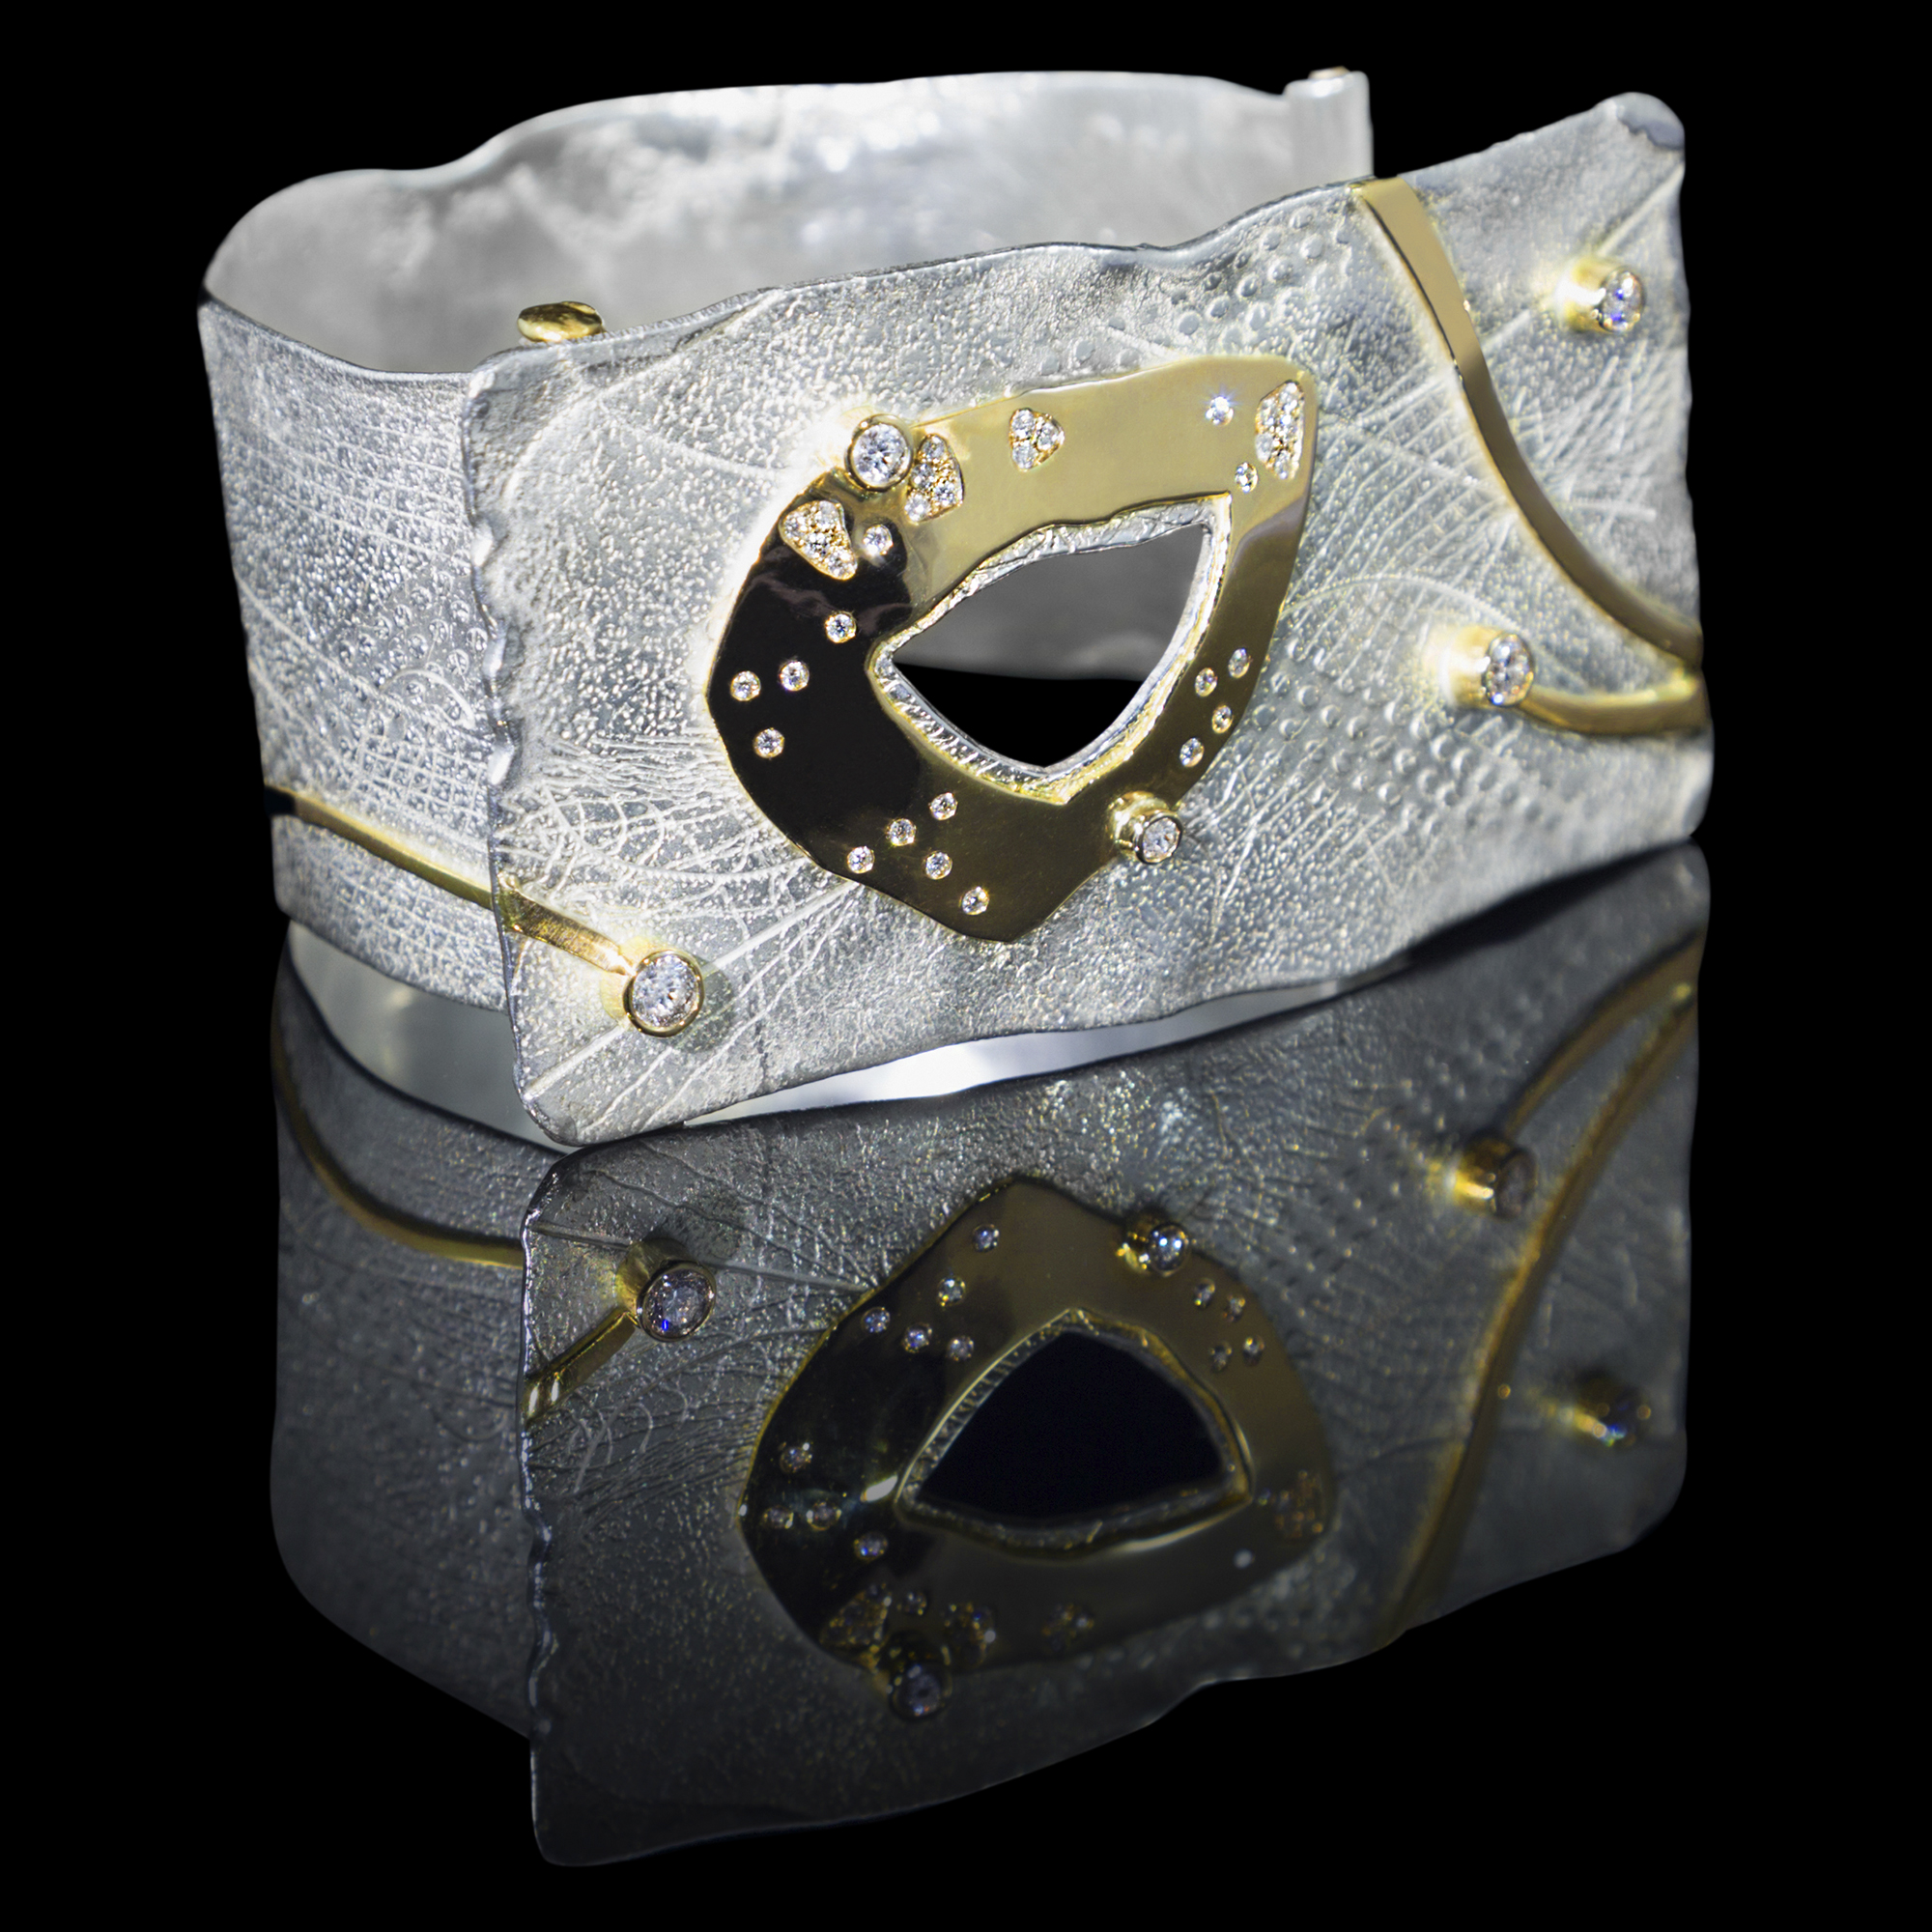 FRIDA | Fine Jewellery. Shield™ Collection, Shackle cuff. Symbolizing women empowerment. Custom designed sterling silver and 18kt yellow gold cuff set with brilliant-cut diamonds.